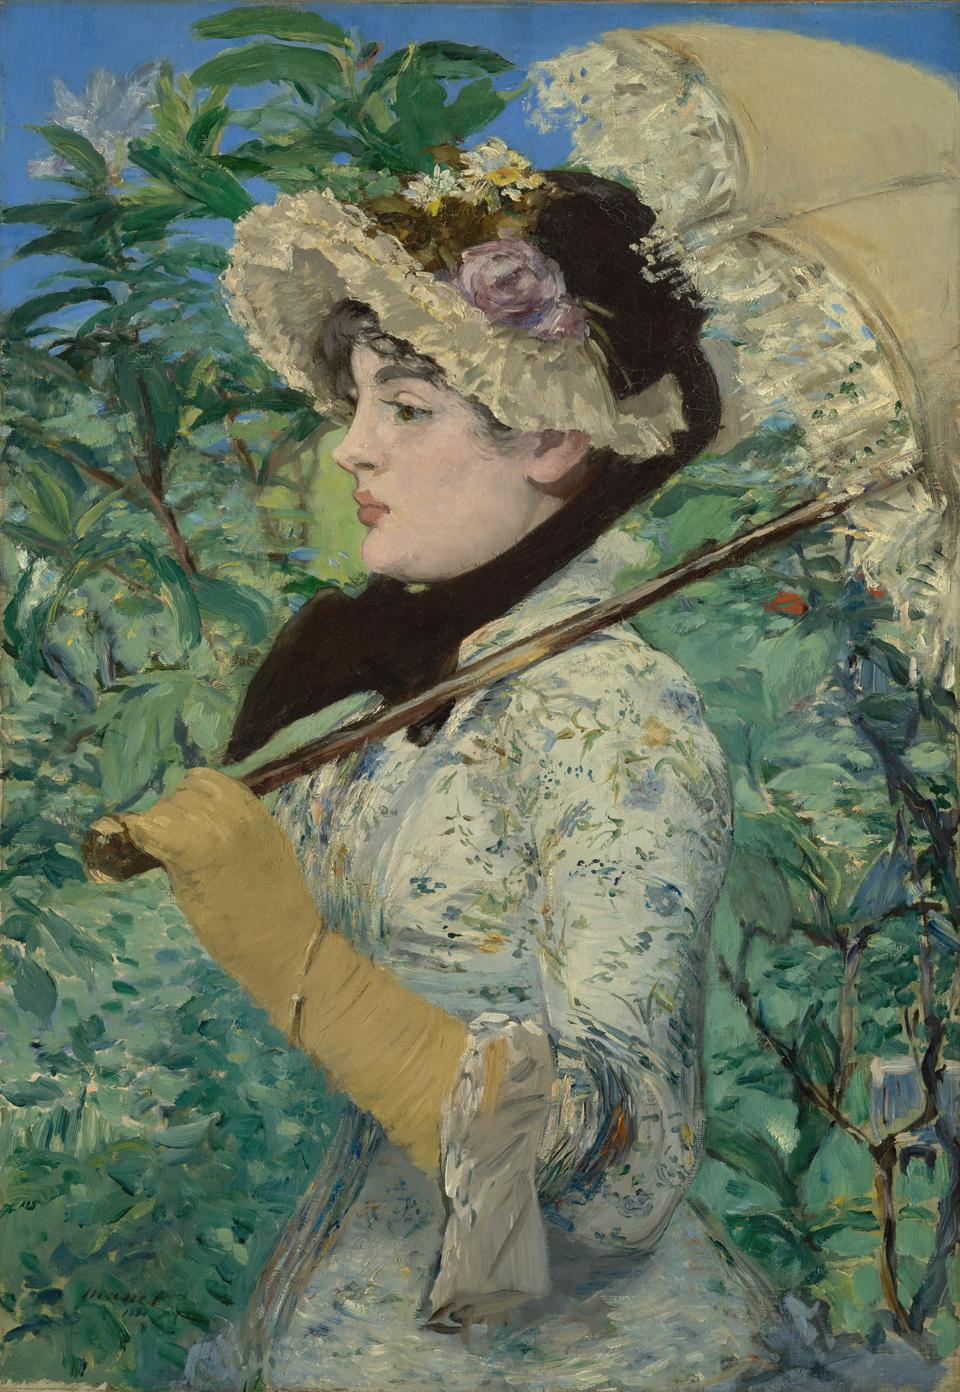 Major Museum Exhibition Highlights How Manet's Influential Late Works Led A Transition From Realism To Impressionism